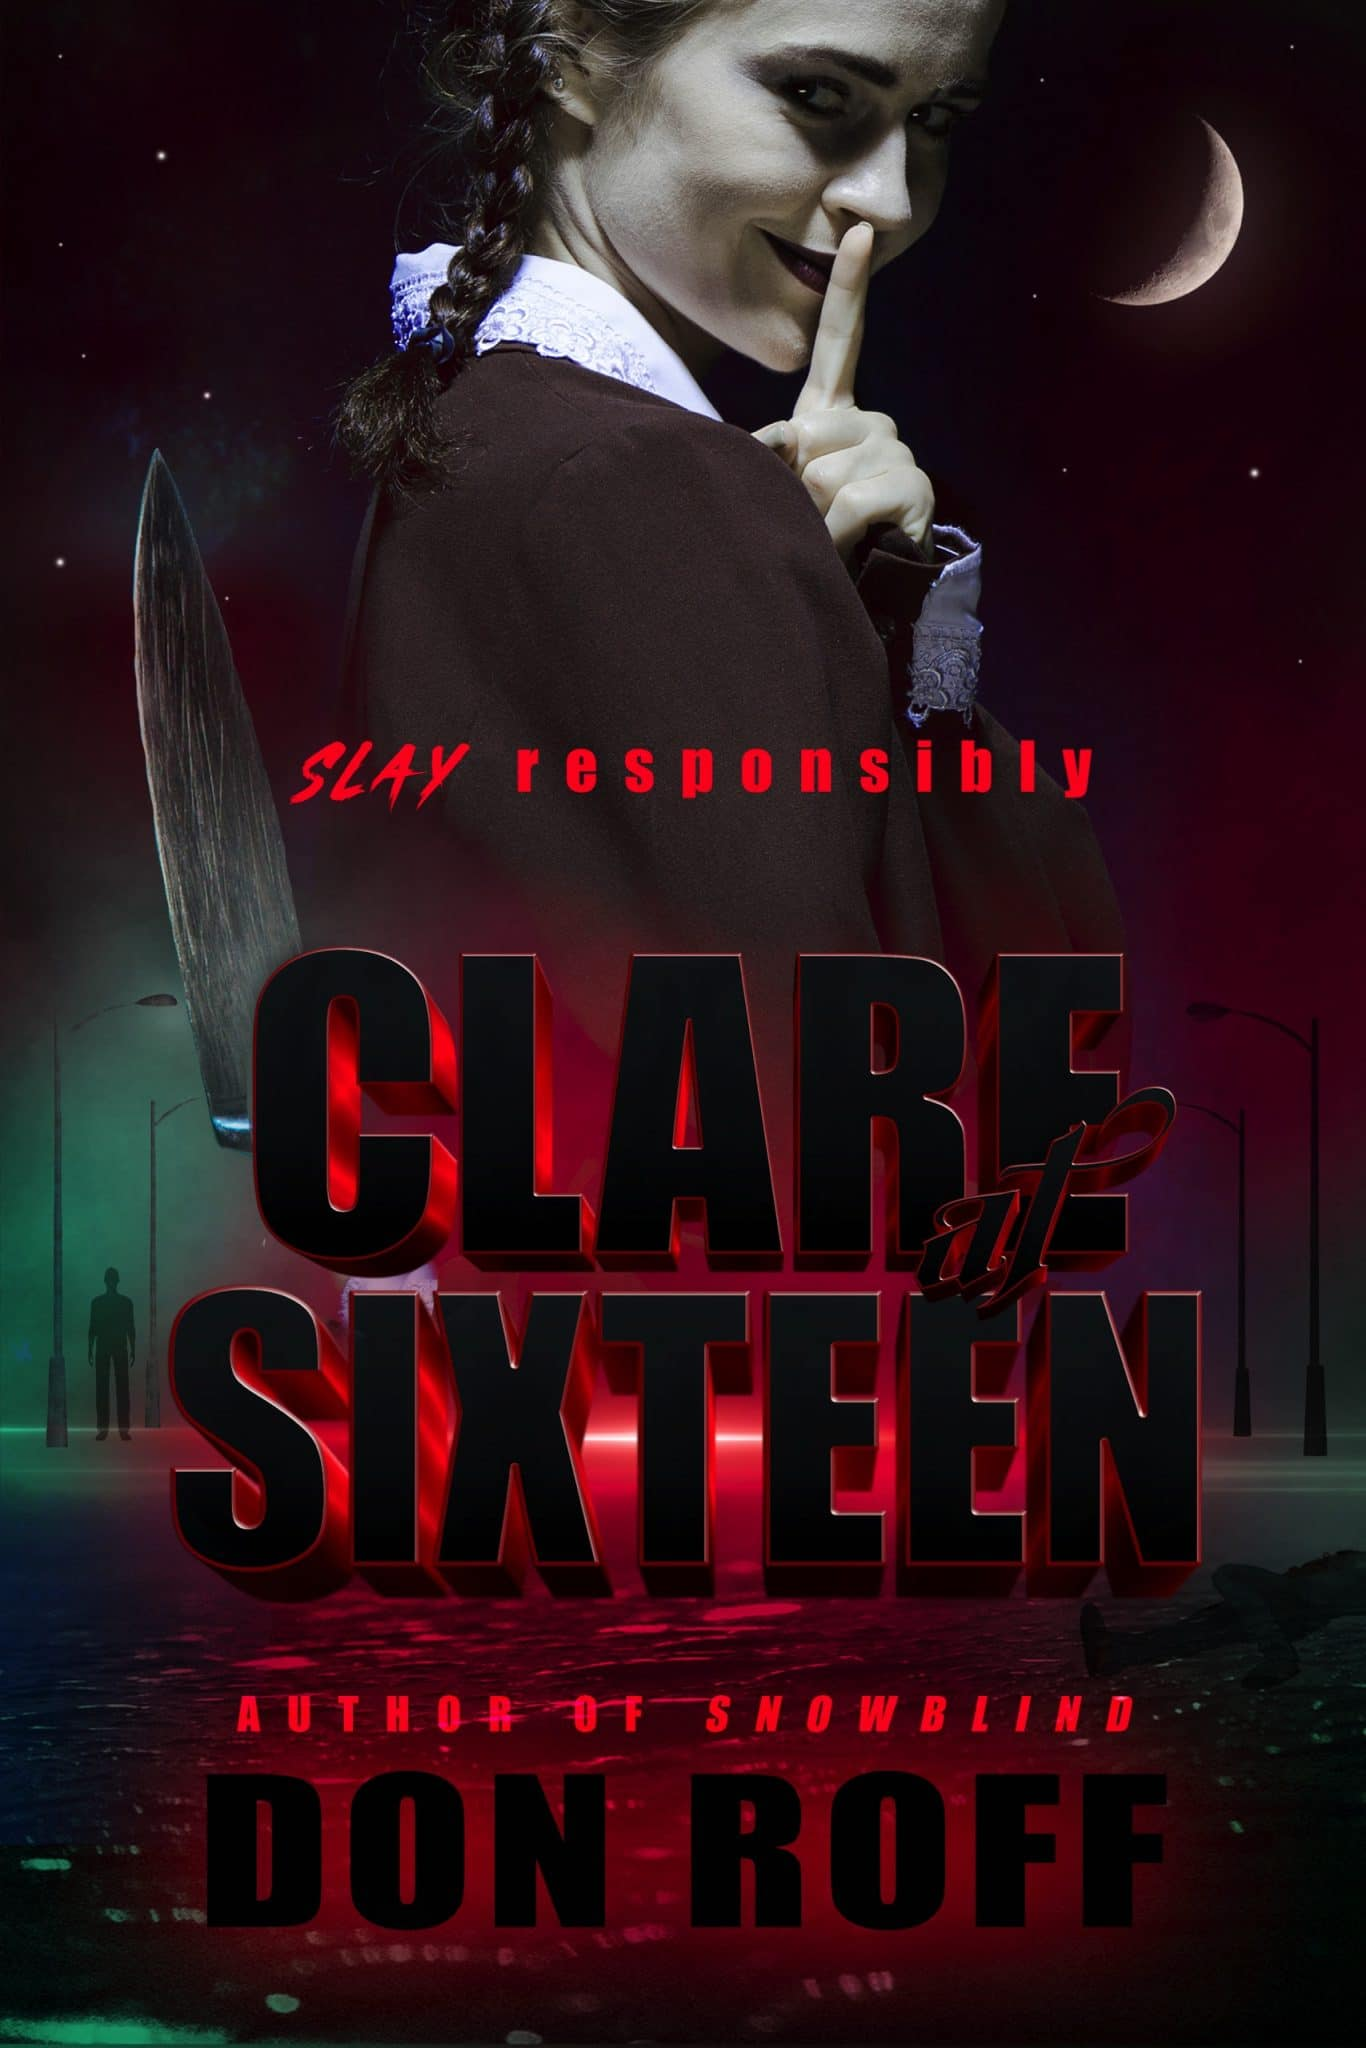 the front cover of the book Clare at Sixteen